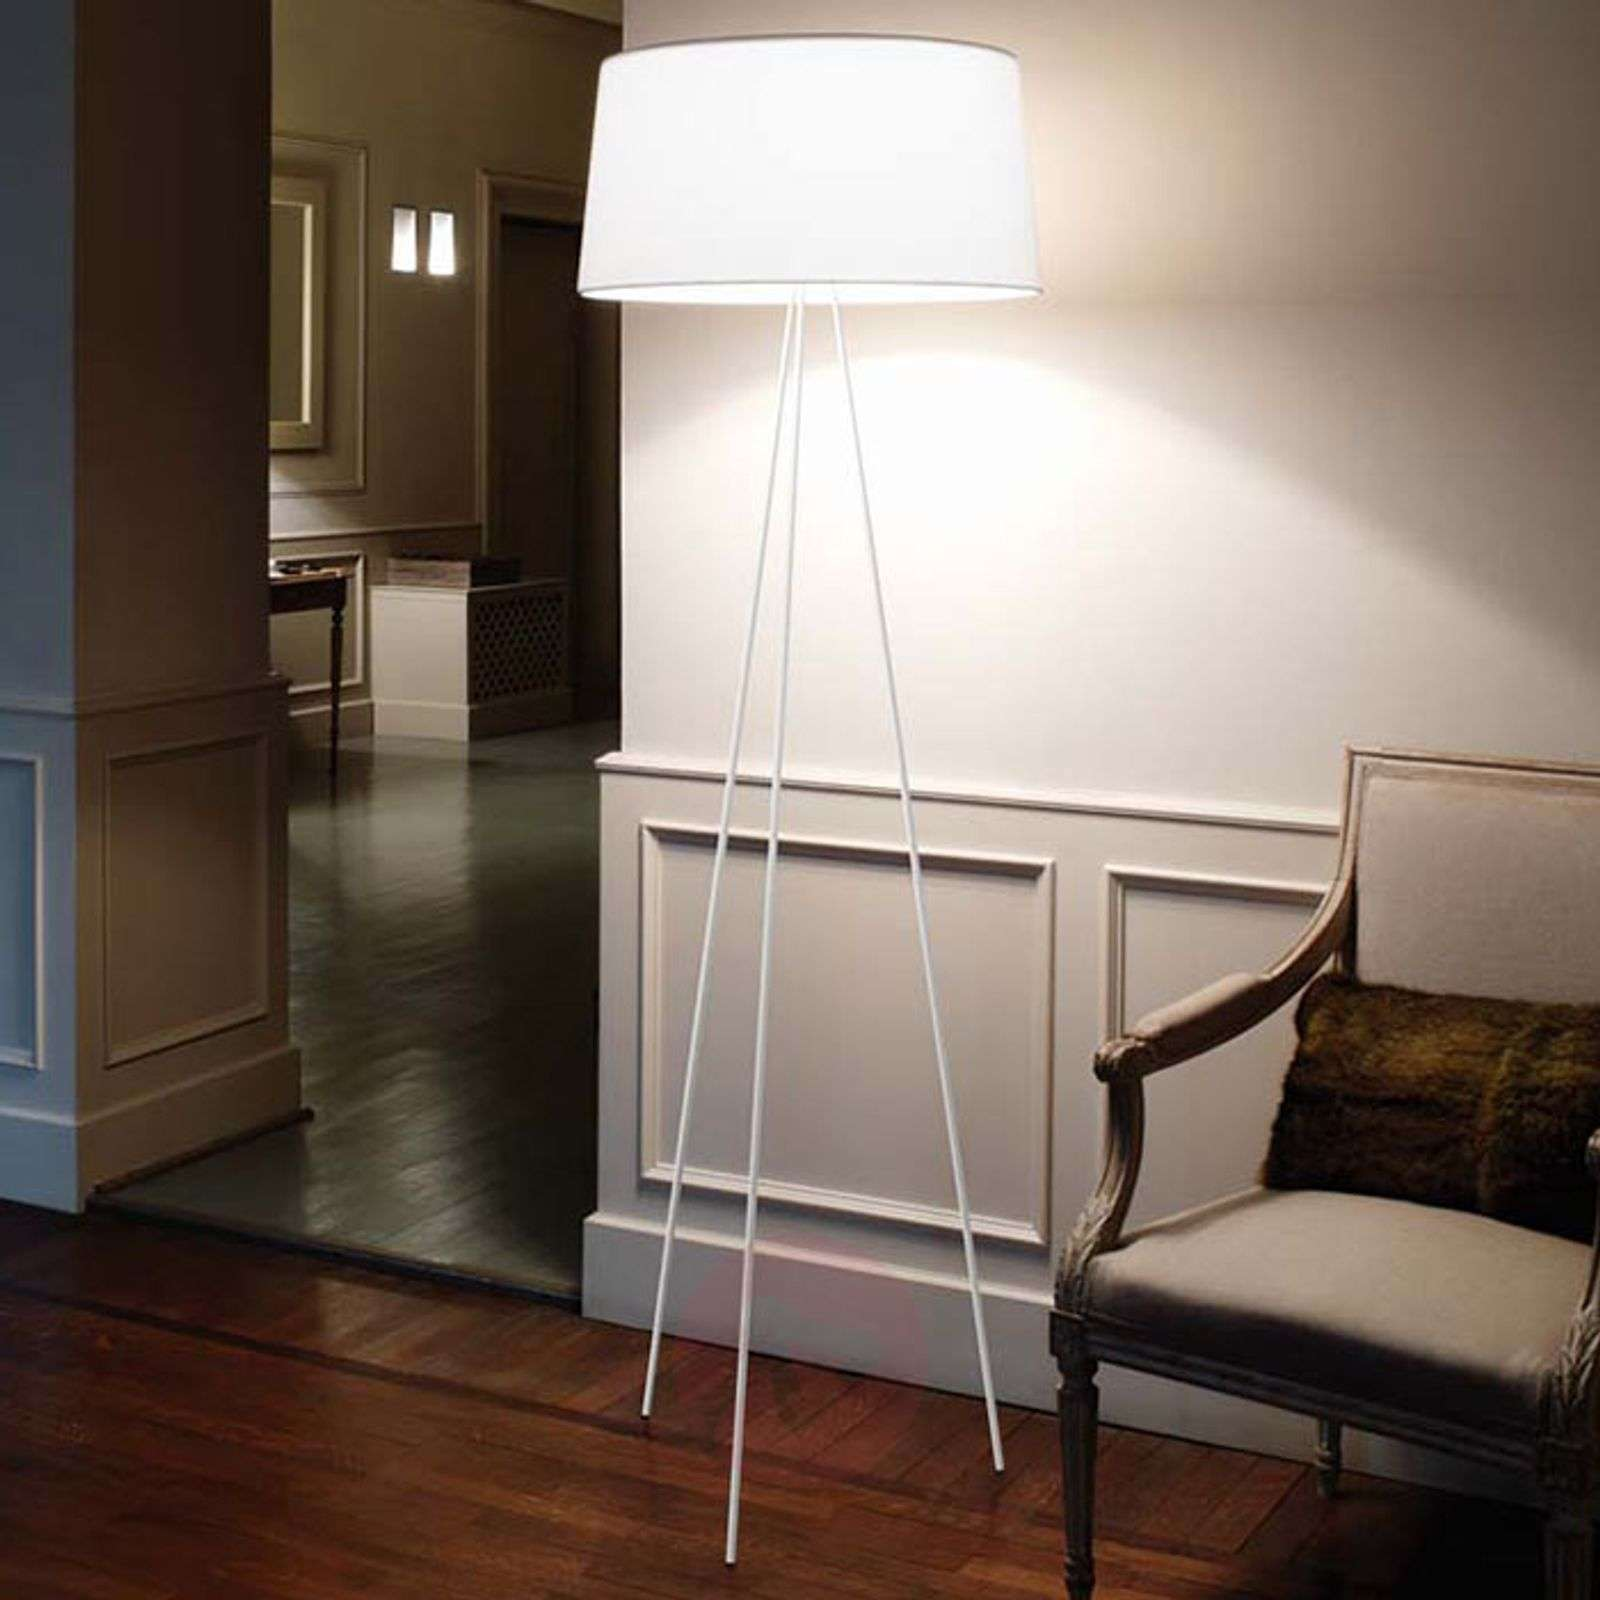 Tripod three-part-stand floor lamp-5520020X-02